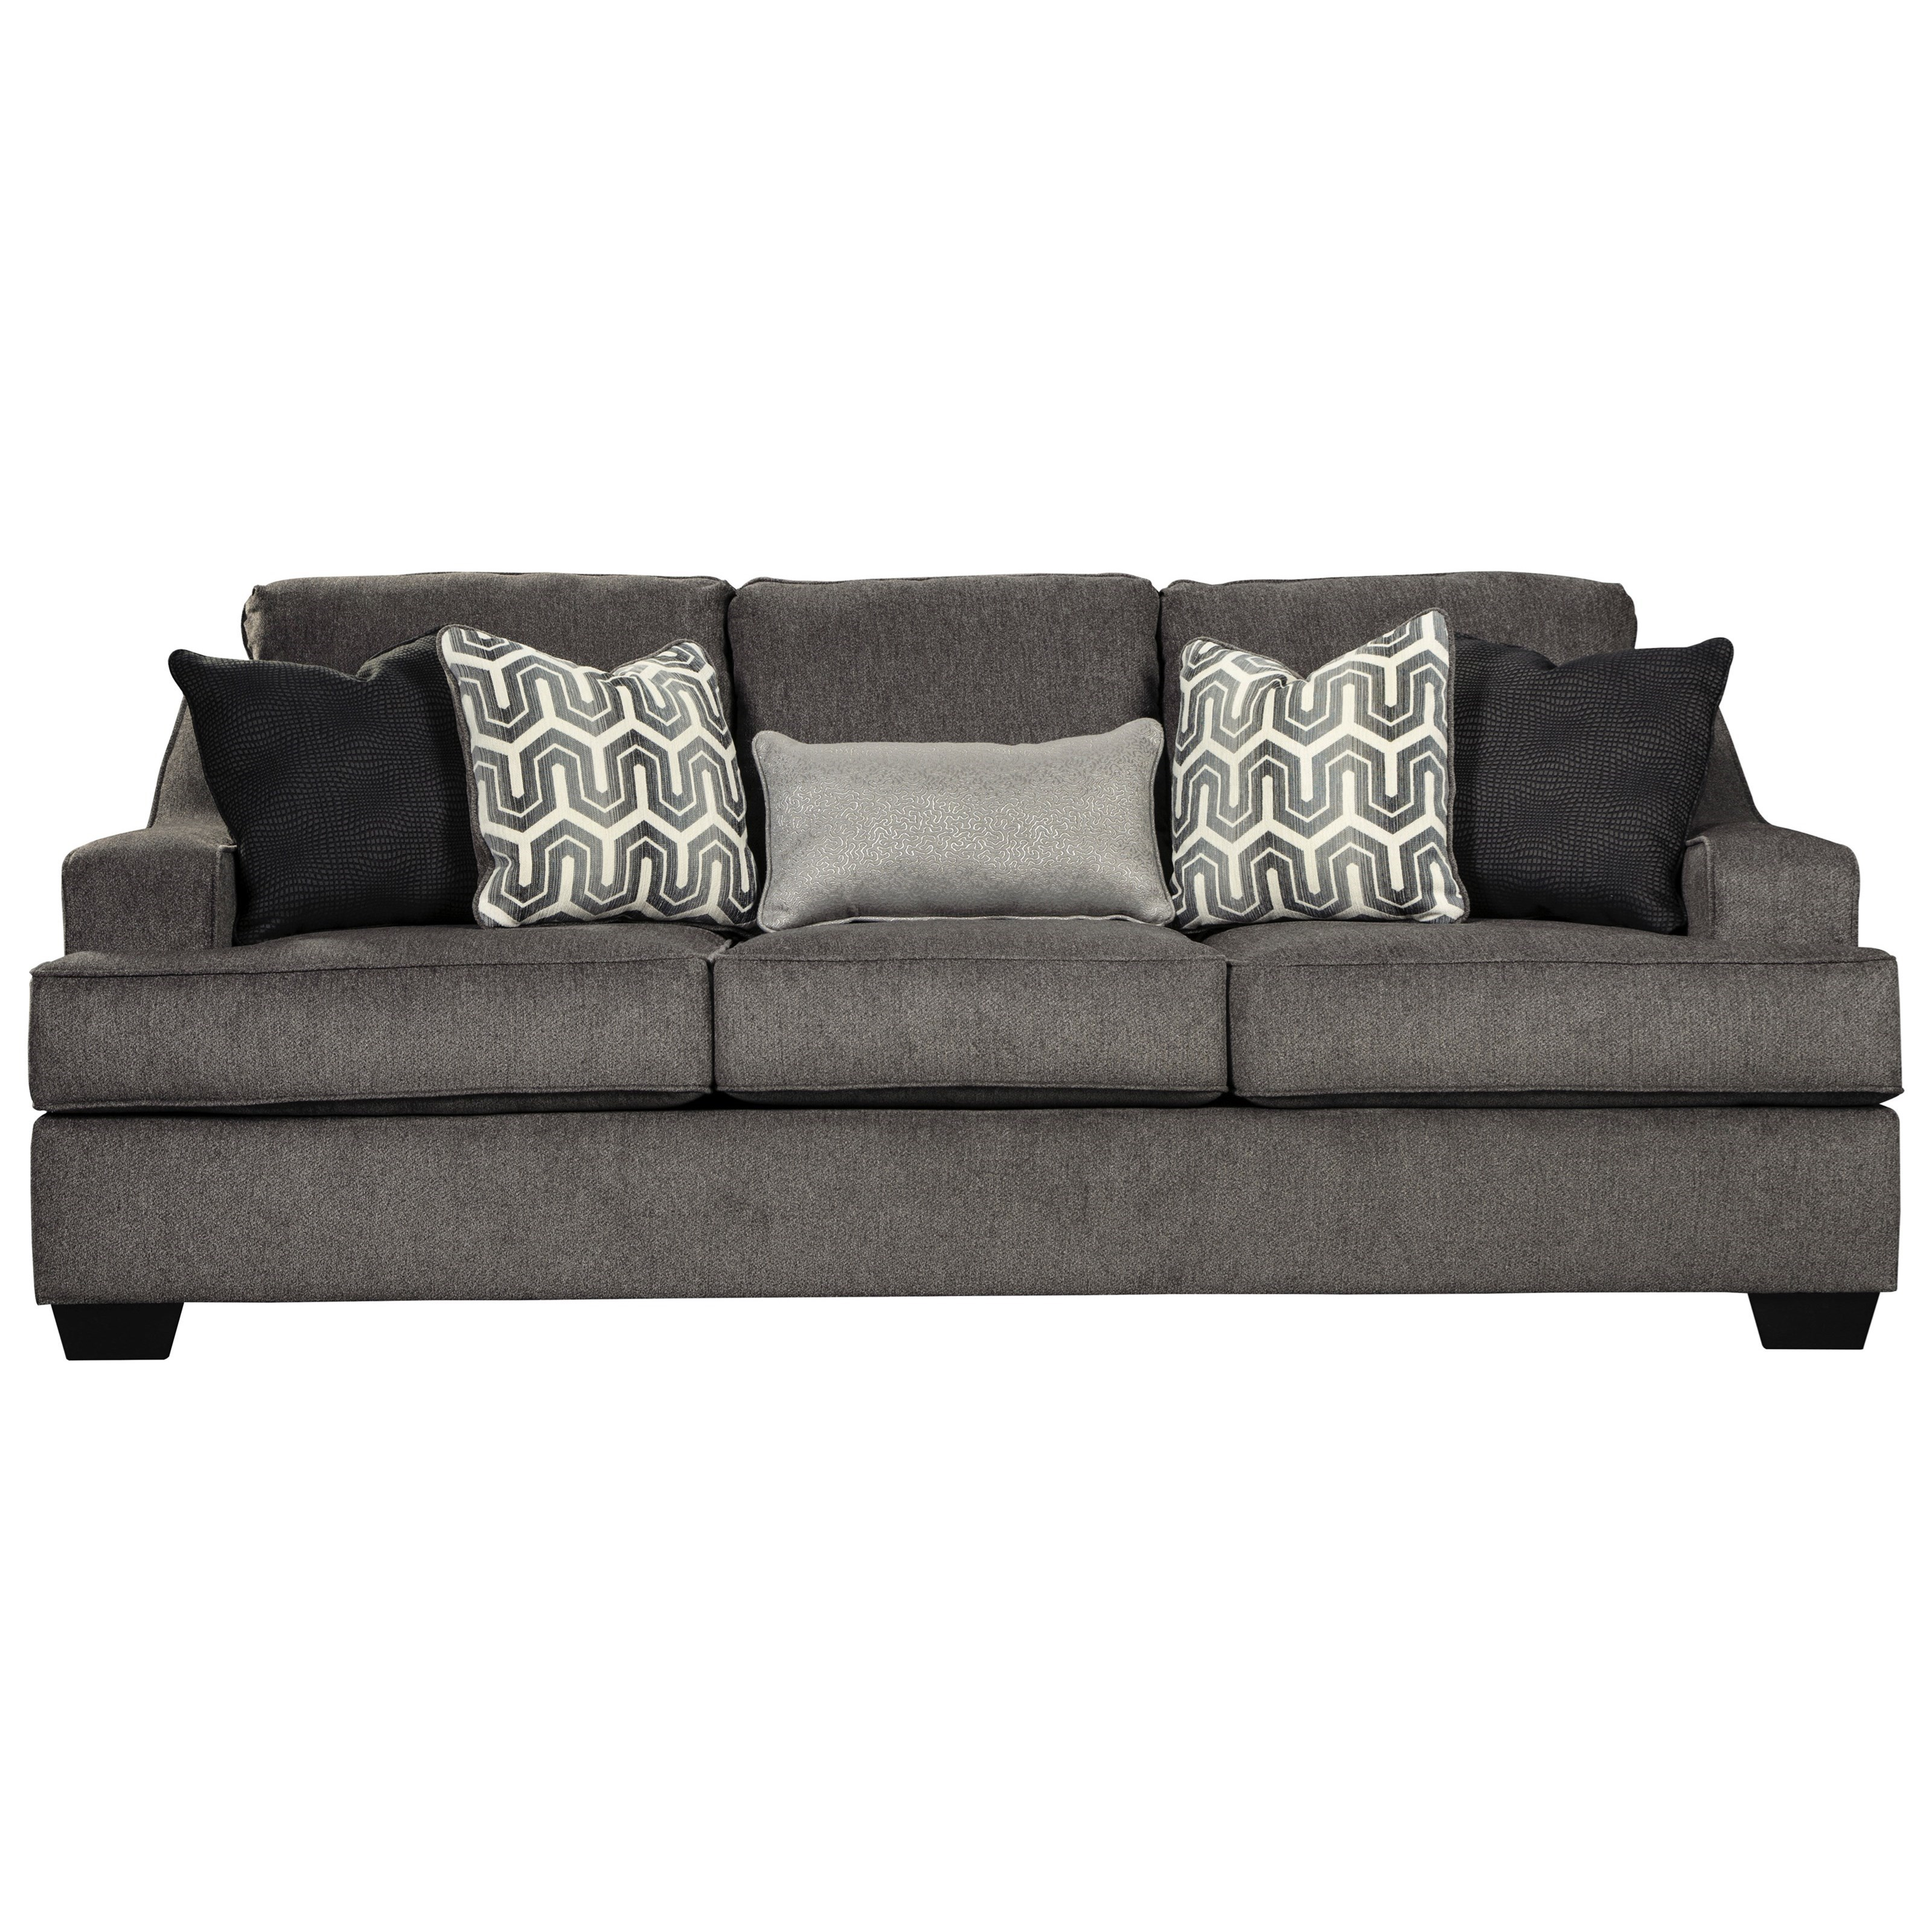 Incroyable Signature Design By Ashley Gilmer Queen Sofa Sleeper   Item Number: 6560339